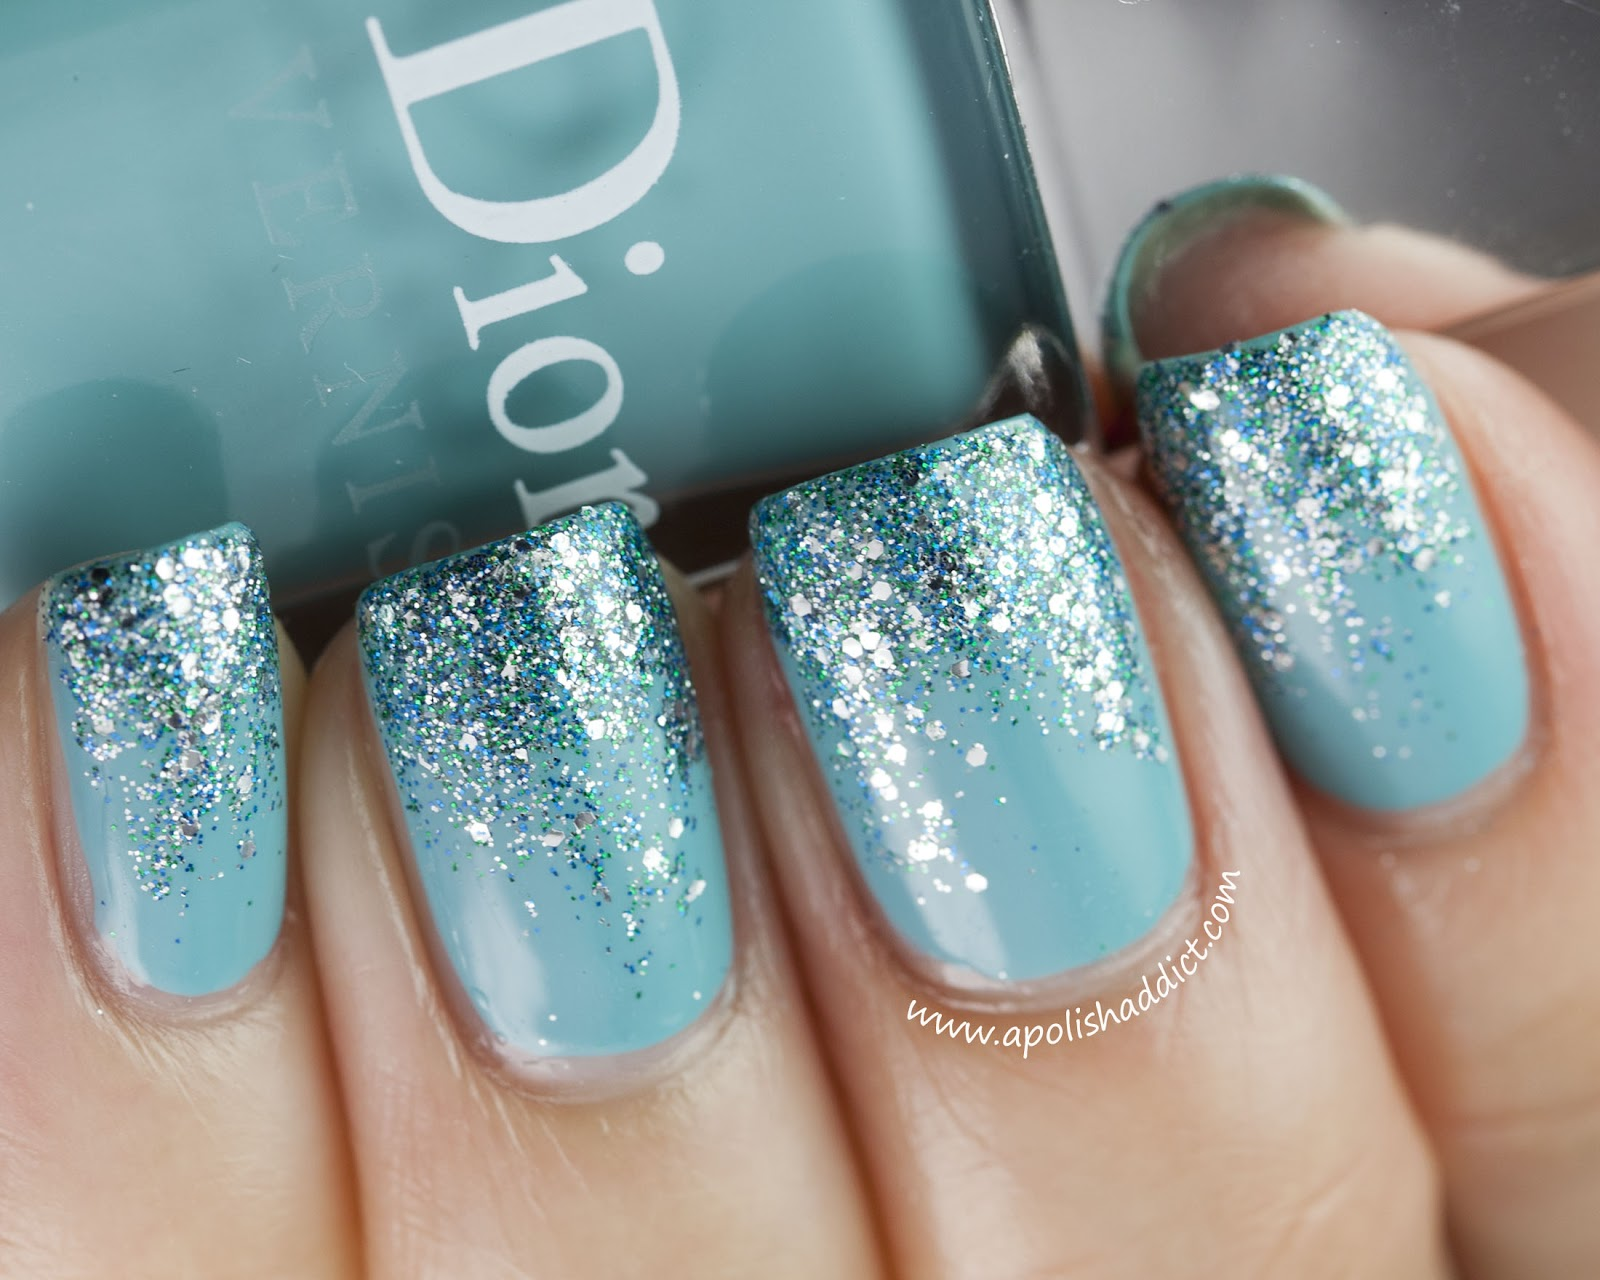 Glitter nail designs tumblr sparkle nails on tumblr glitter nail designs tumblr prinsesfo Image collections